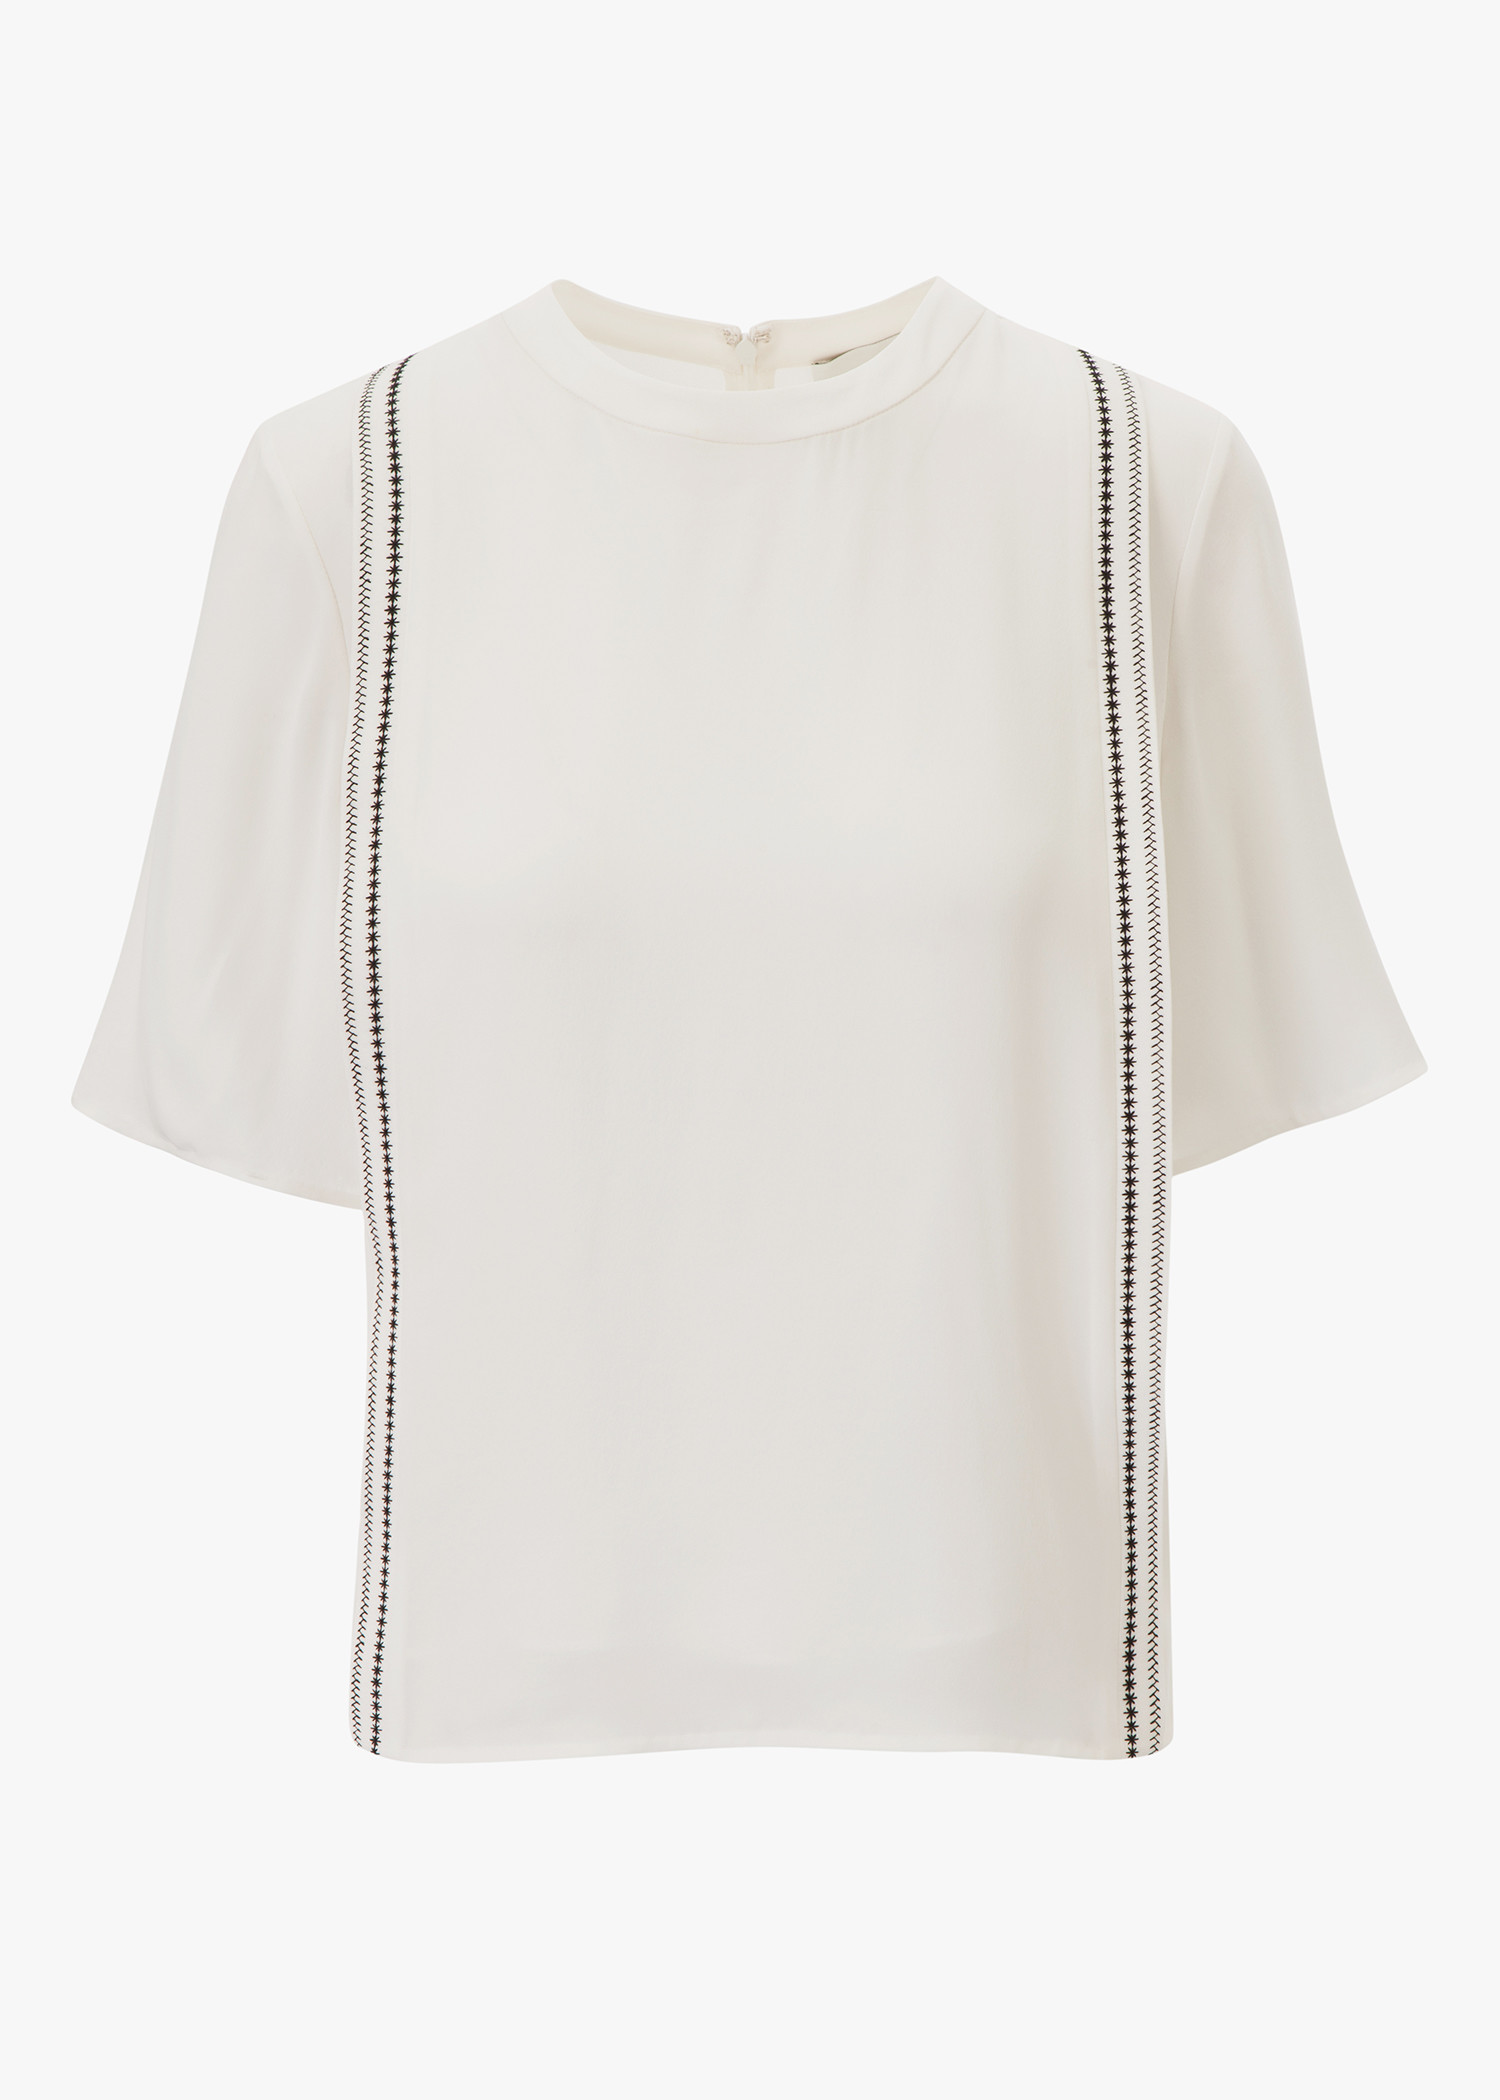 S/S Embroidered Silk Top